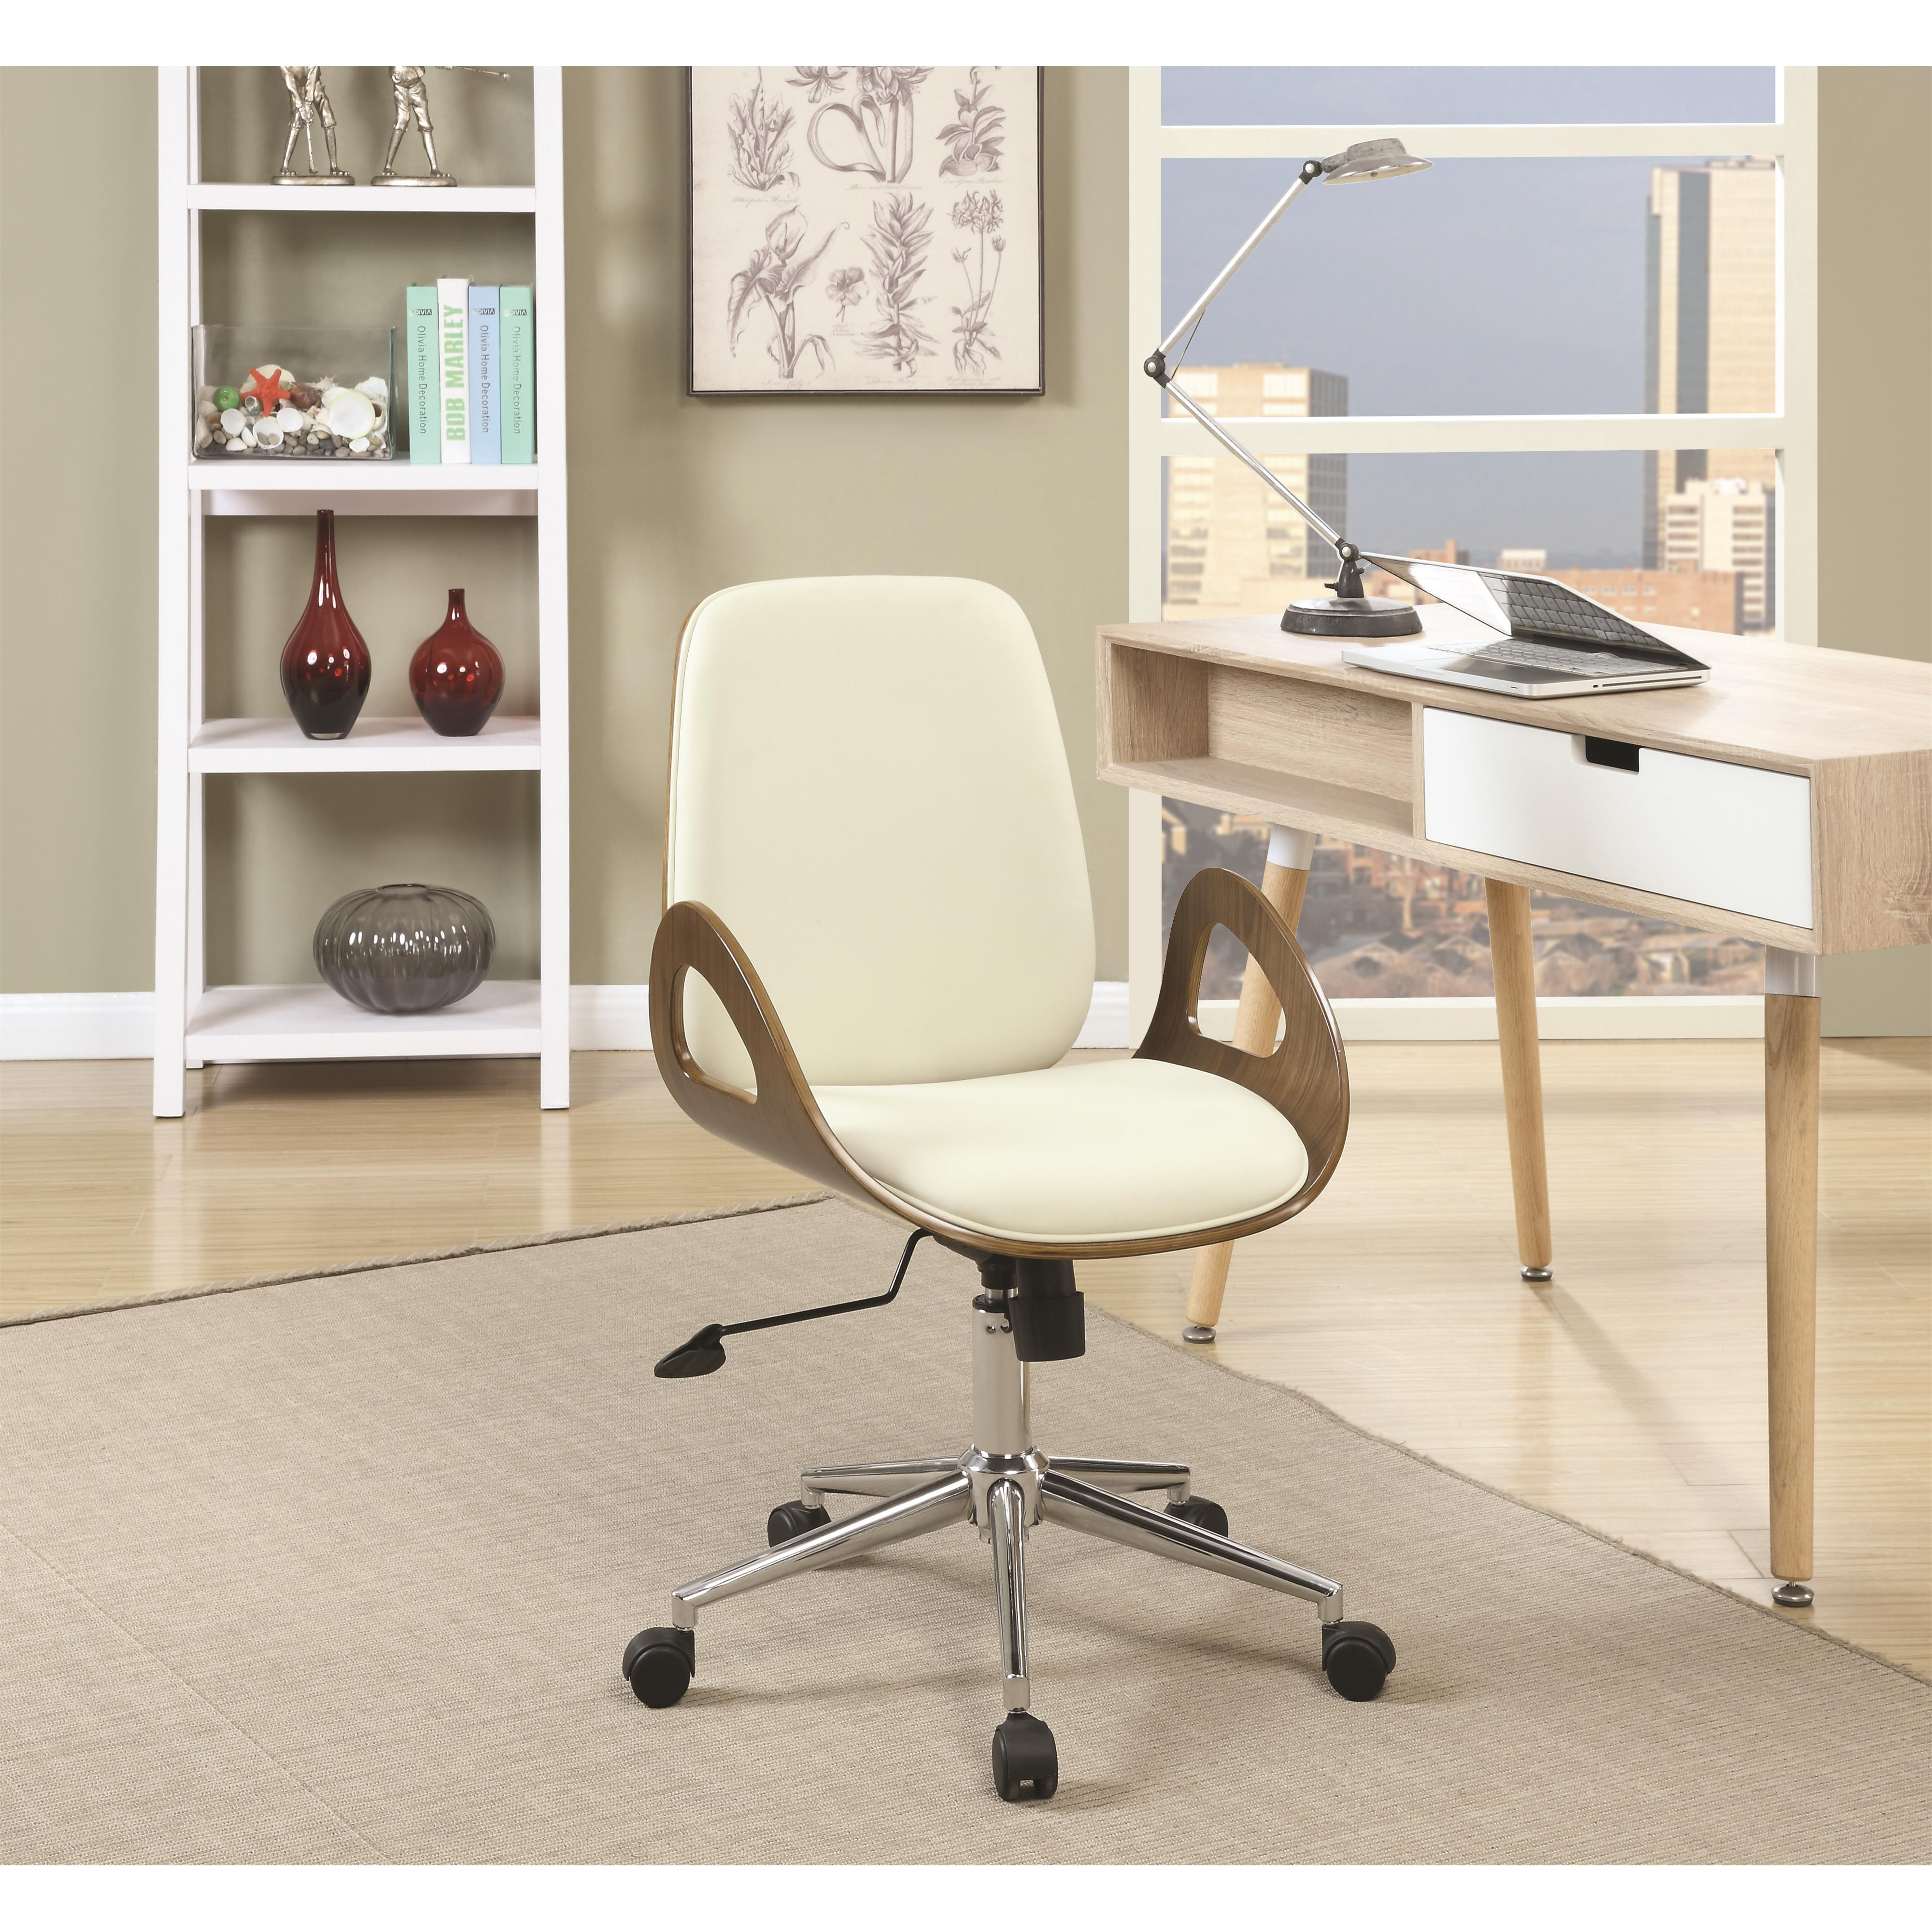 Coaster Office Chairs Office Chair - Item Number: 800737